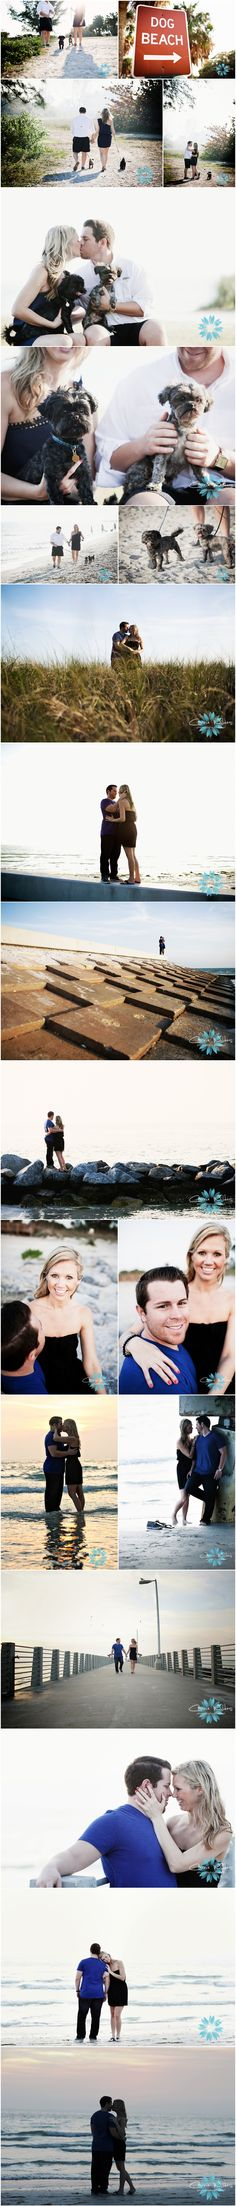 dog/beach engagement... i love how the dog is included! a must.